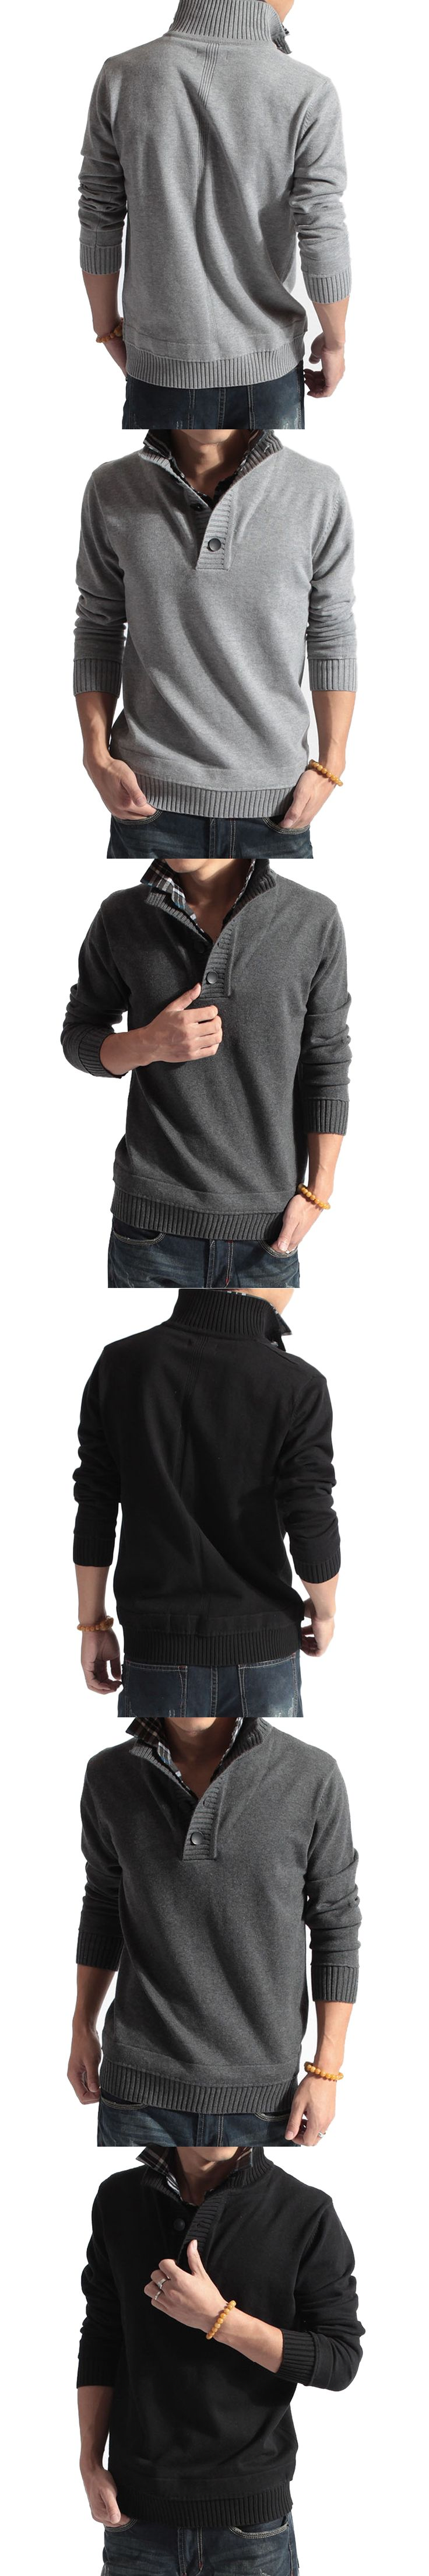 2017 Winter Sweater Casual Slim Fit Pullover Men Balck Gray V Neck Pull Homme Sweaters Top Quality Cashmere Sweater Men